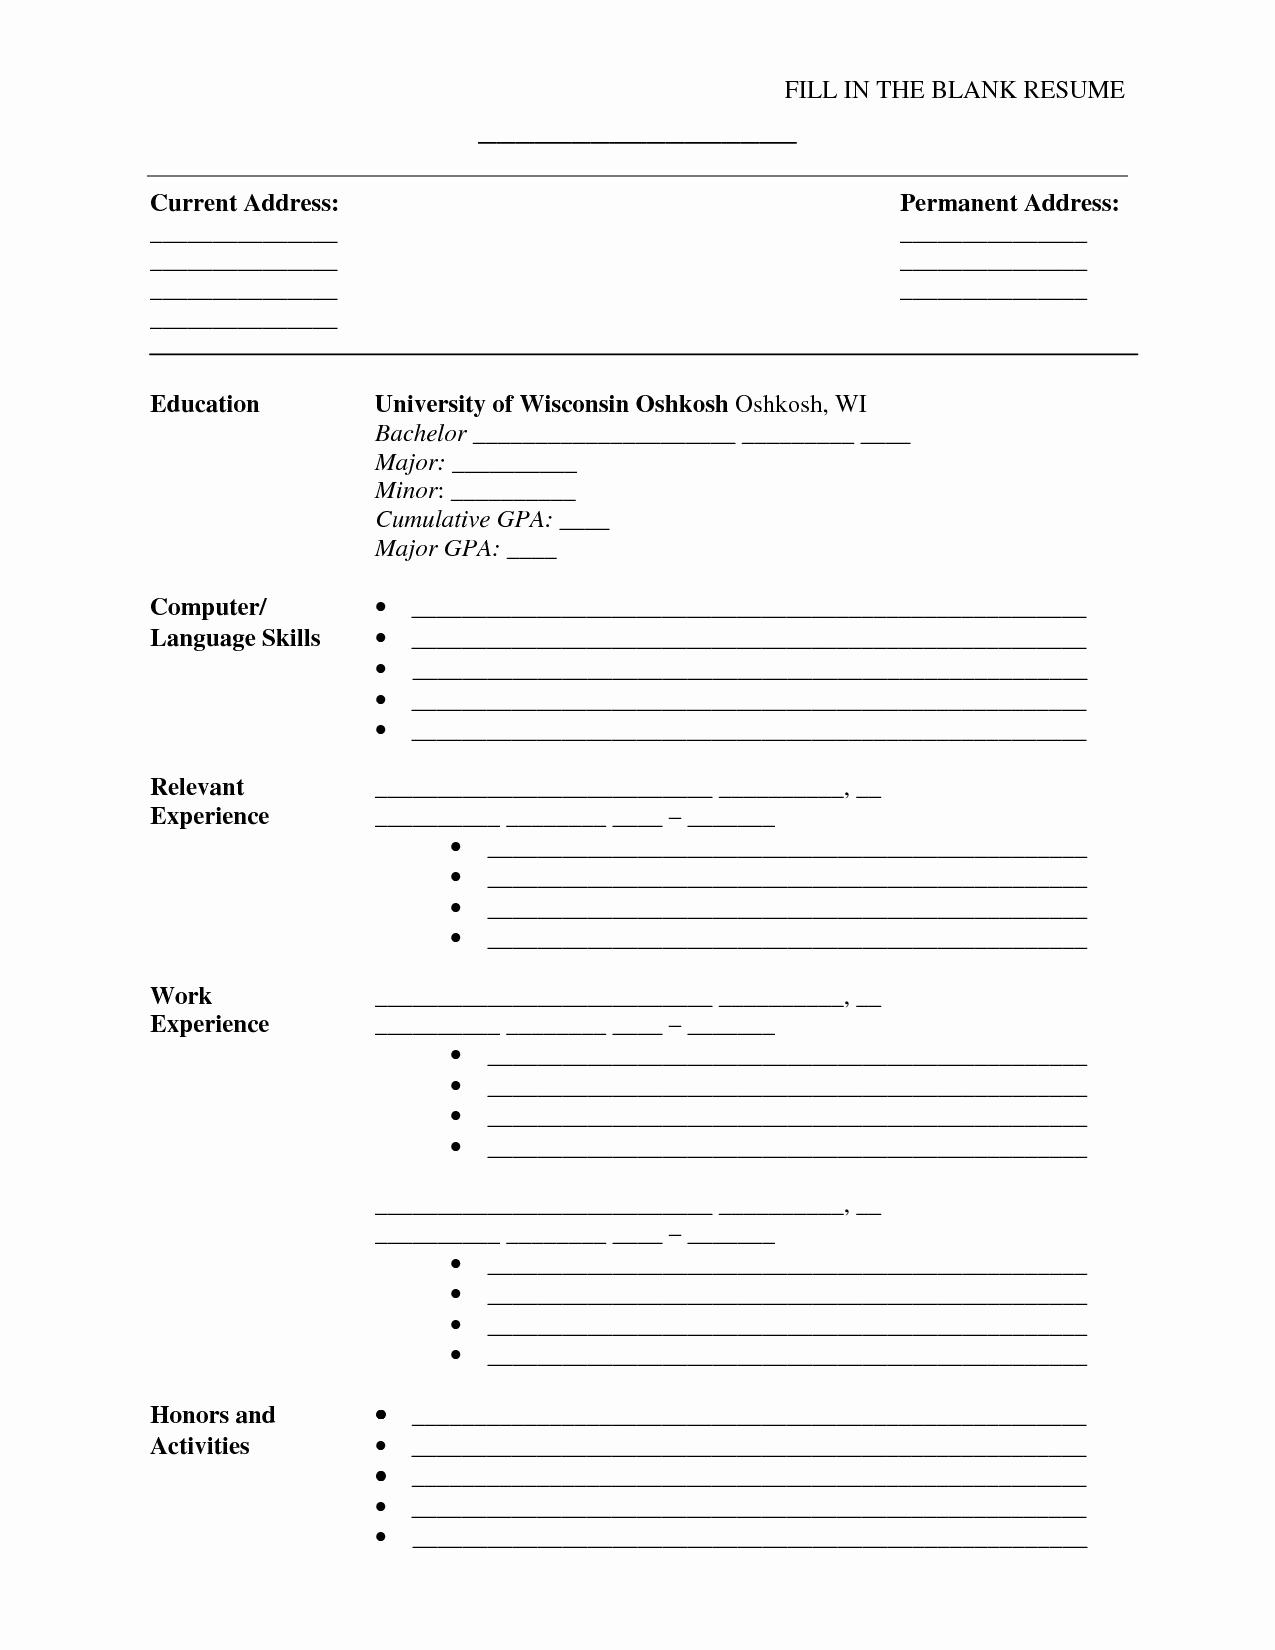 Blank Resume Pdf - 46 New Blank Resume Template Pdf Resume Templates Ideas 2018